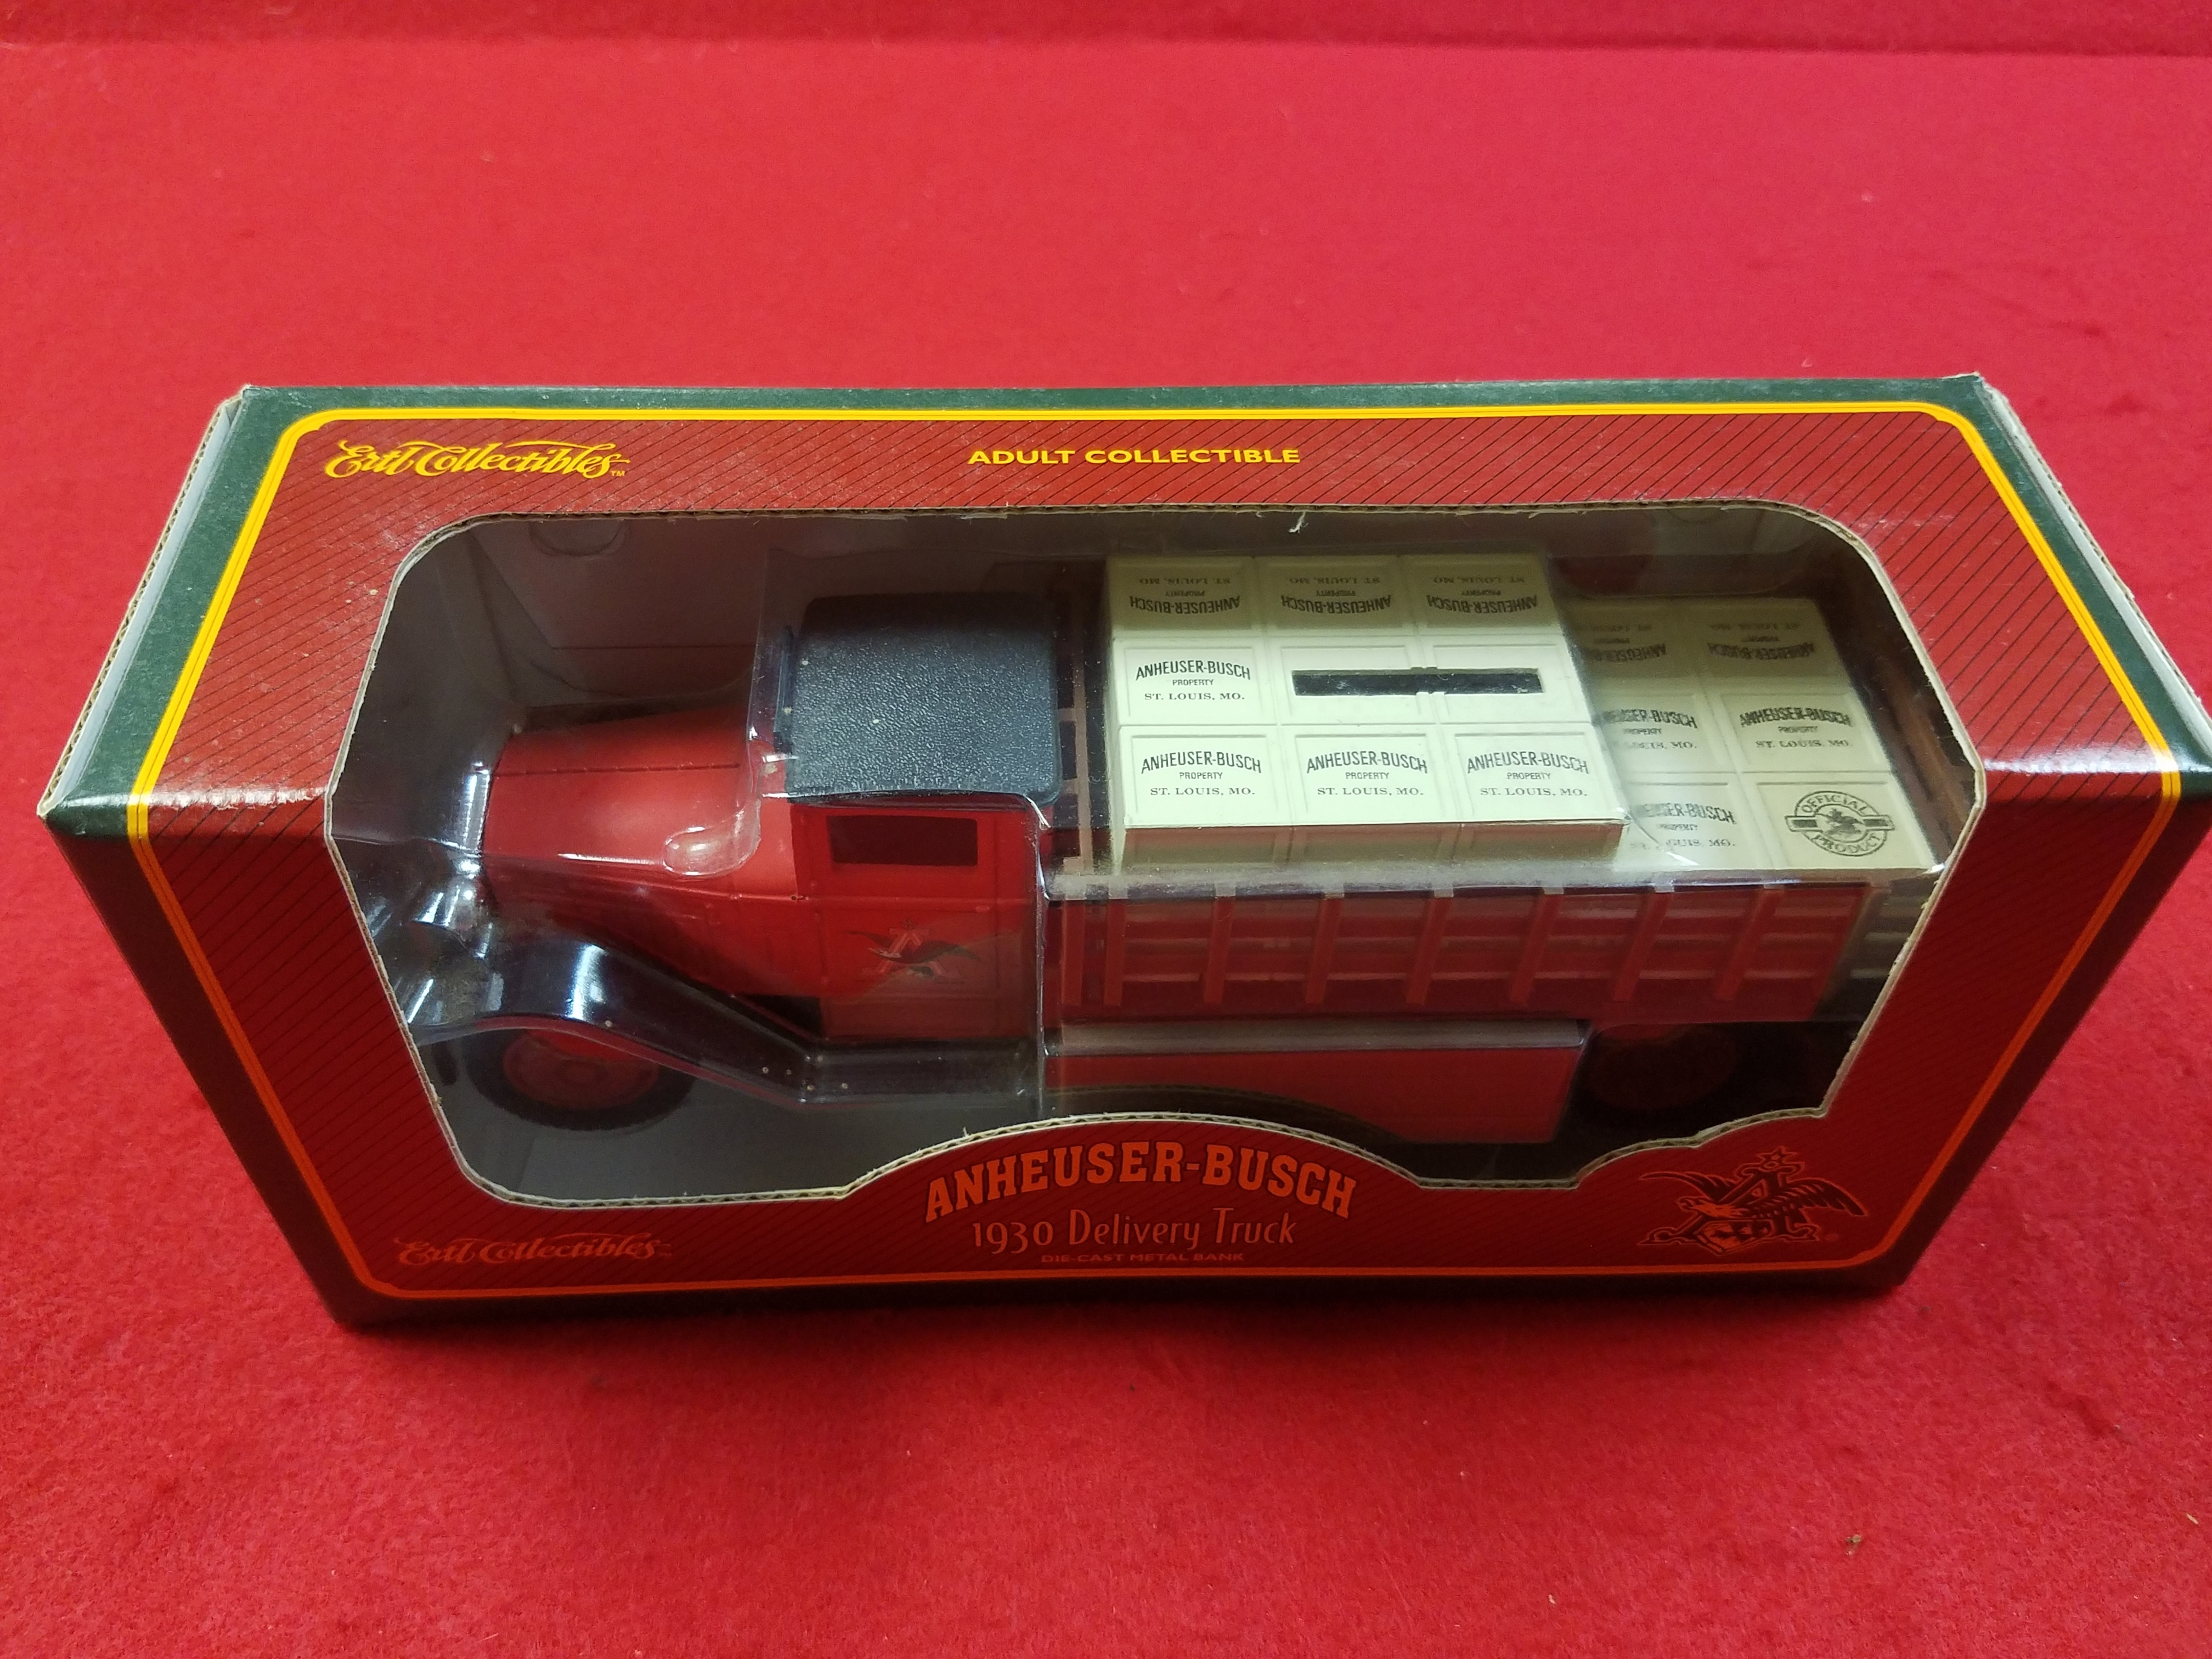 ANHEUSER-BUSCH 1930 DELIVERY TRUCK BANK COLLECTIBLE